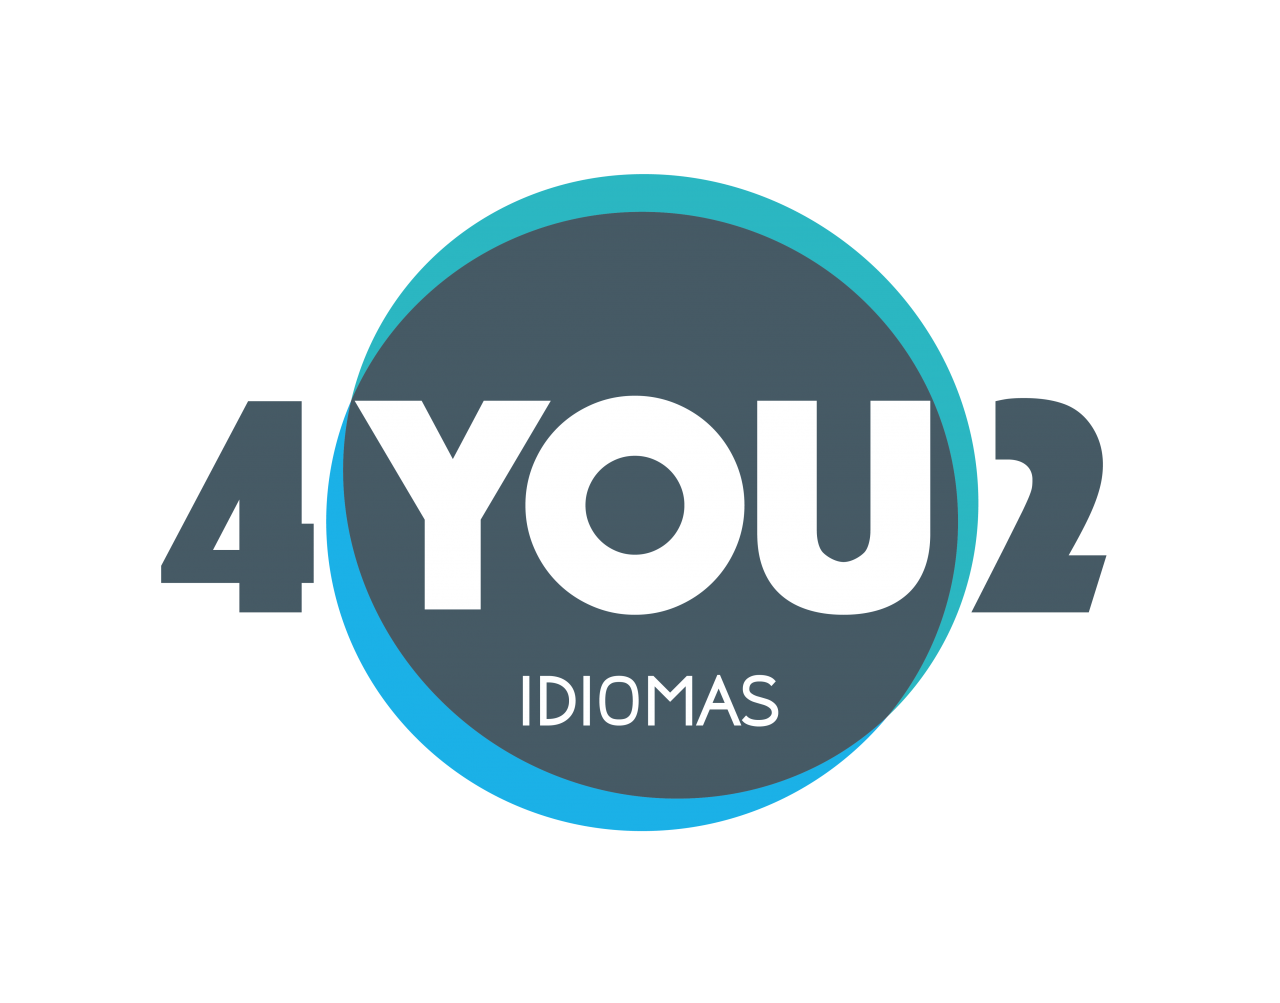 4you2 logo.png